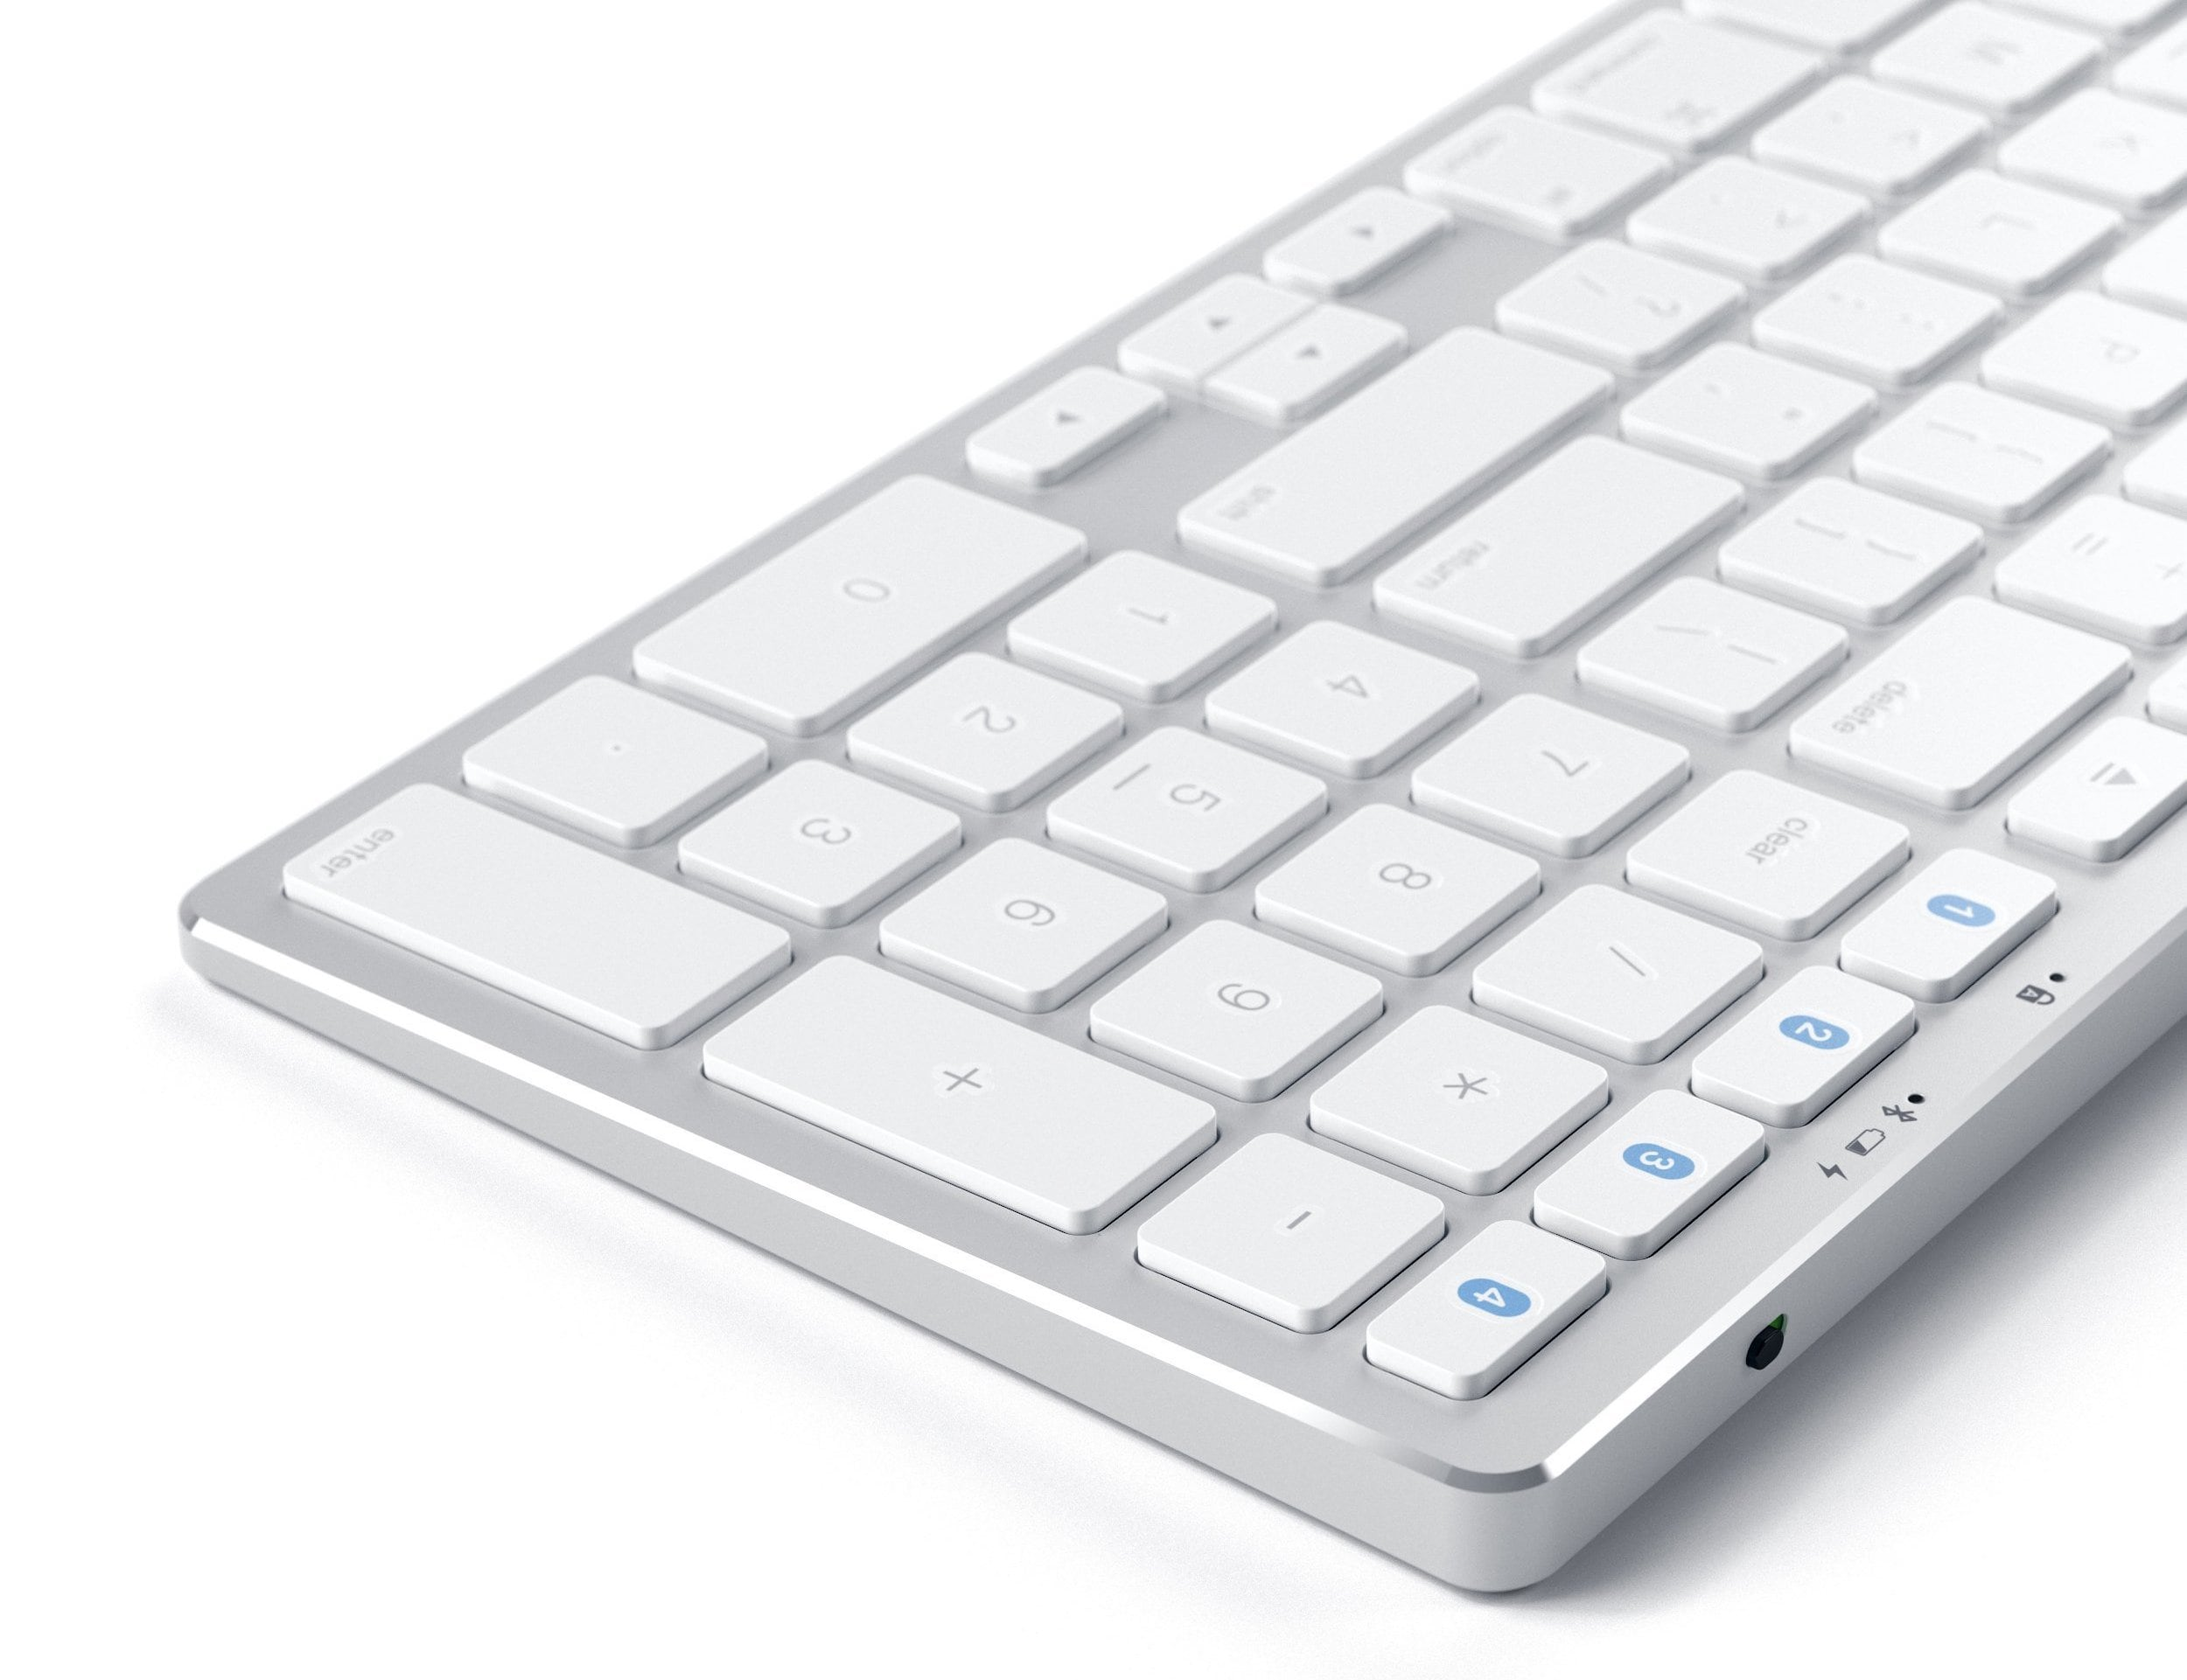 4504fdfcb32 With its sleek, streamlined design, the keyboard also complements your Mac  devices and other accessories.